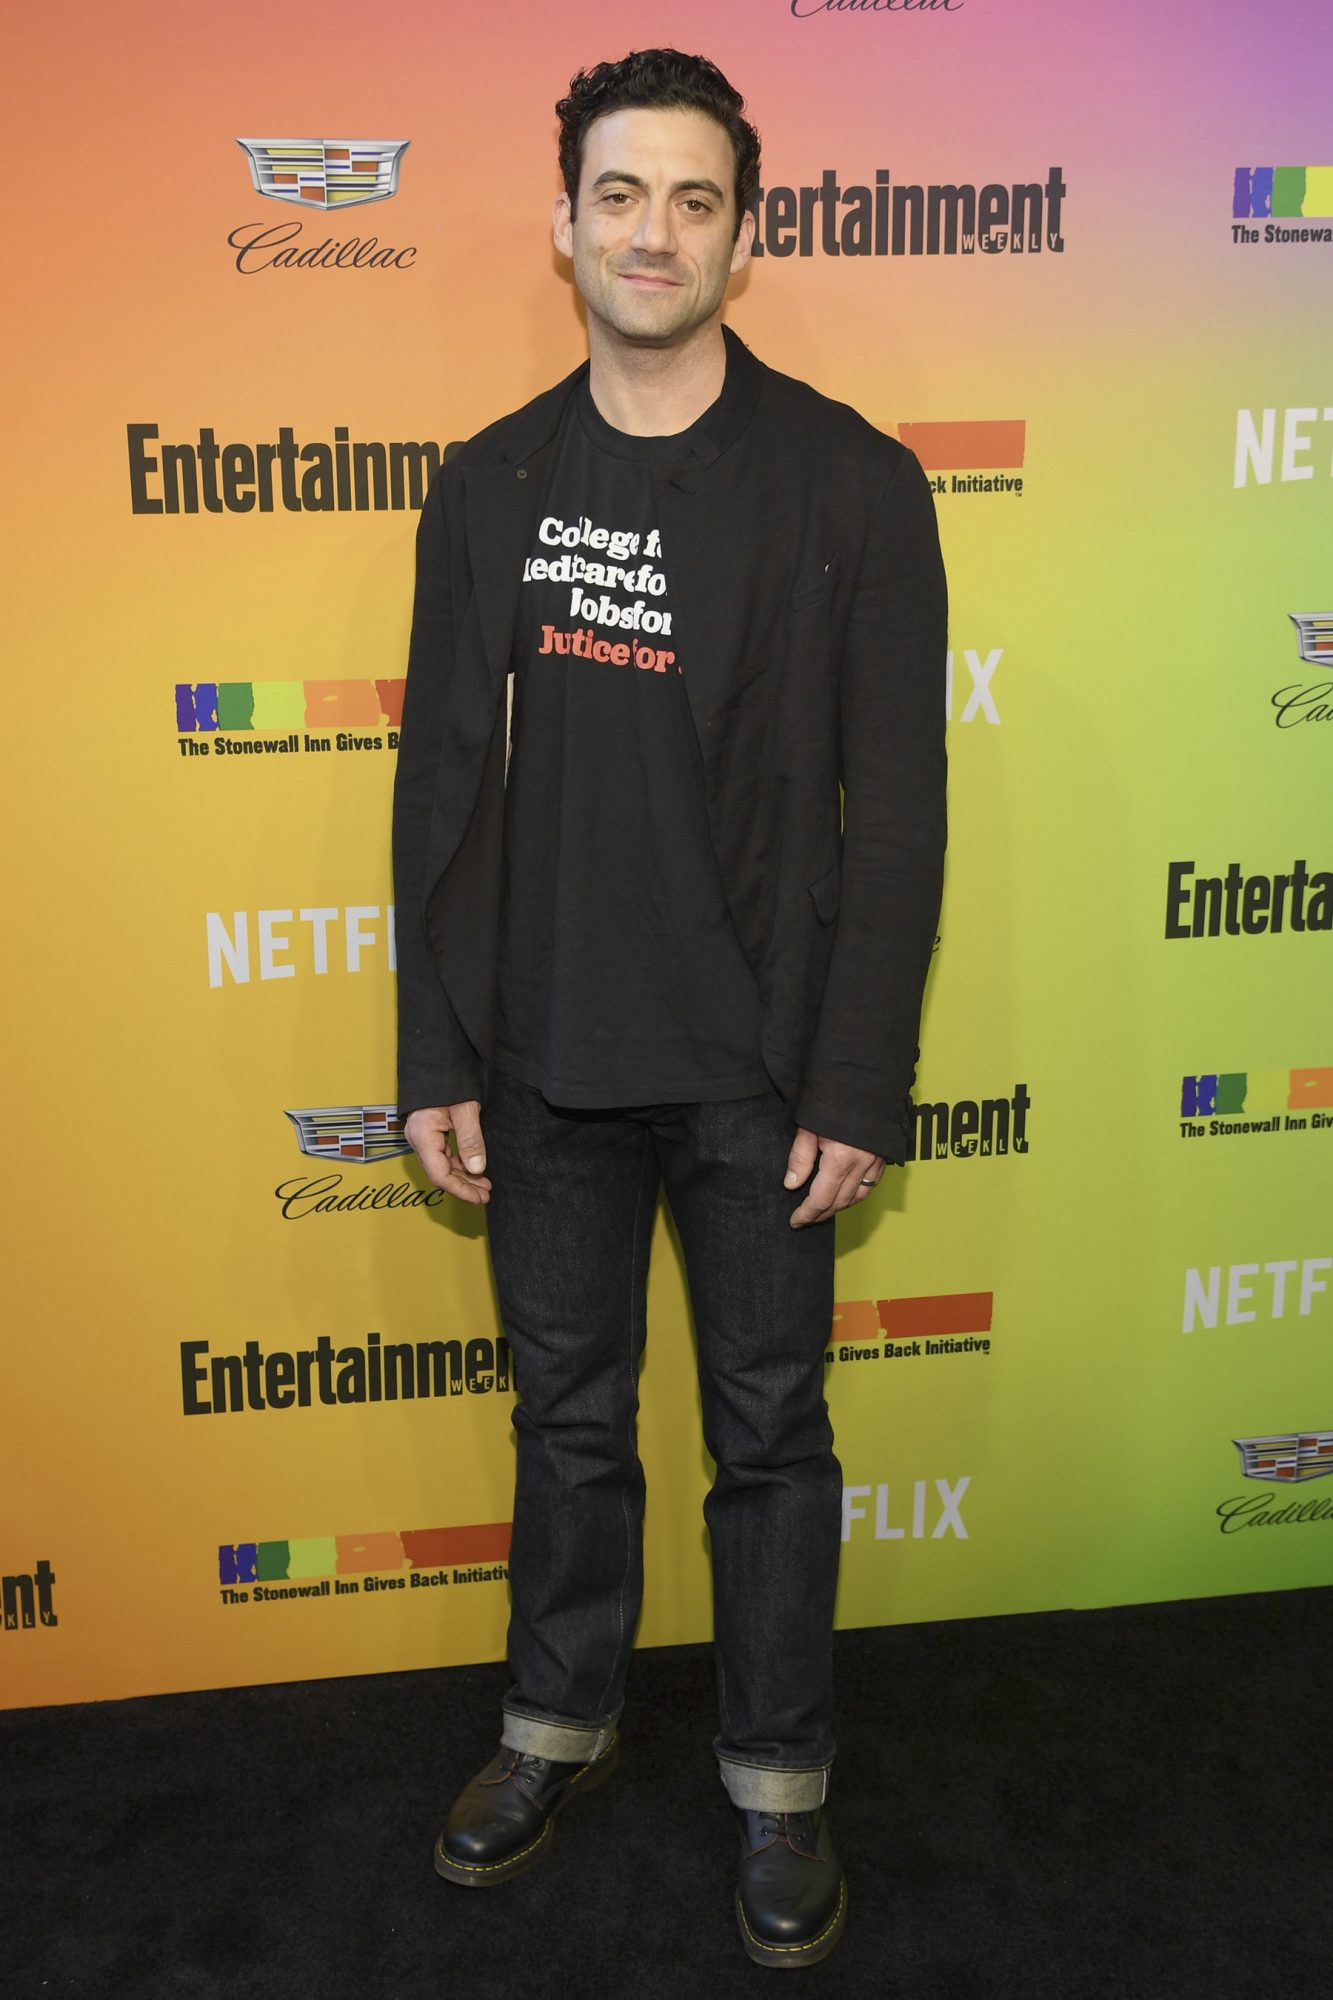 NEW YORK, NEW YORK - JUNE 05: Morgan Spector attends as Entertainment Weekly Celebrates Its Annual LGBTQ Issue at the Stonewall Inn on June 05, 2019 in New York City. (Photo by Dimitrios Kambouris/Getty Images for Entertainment Weekly)